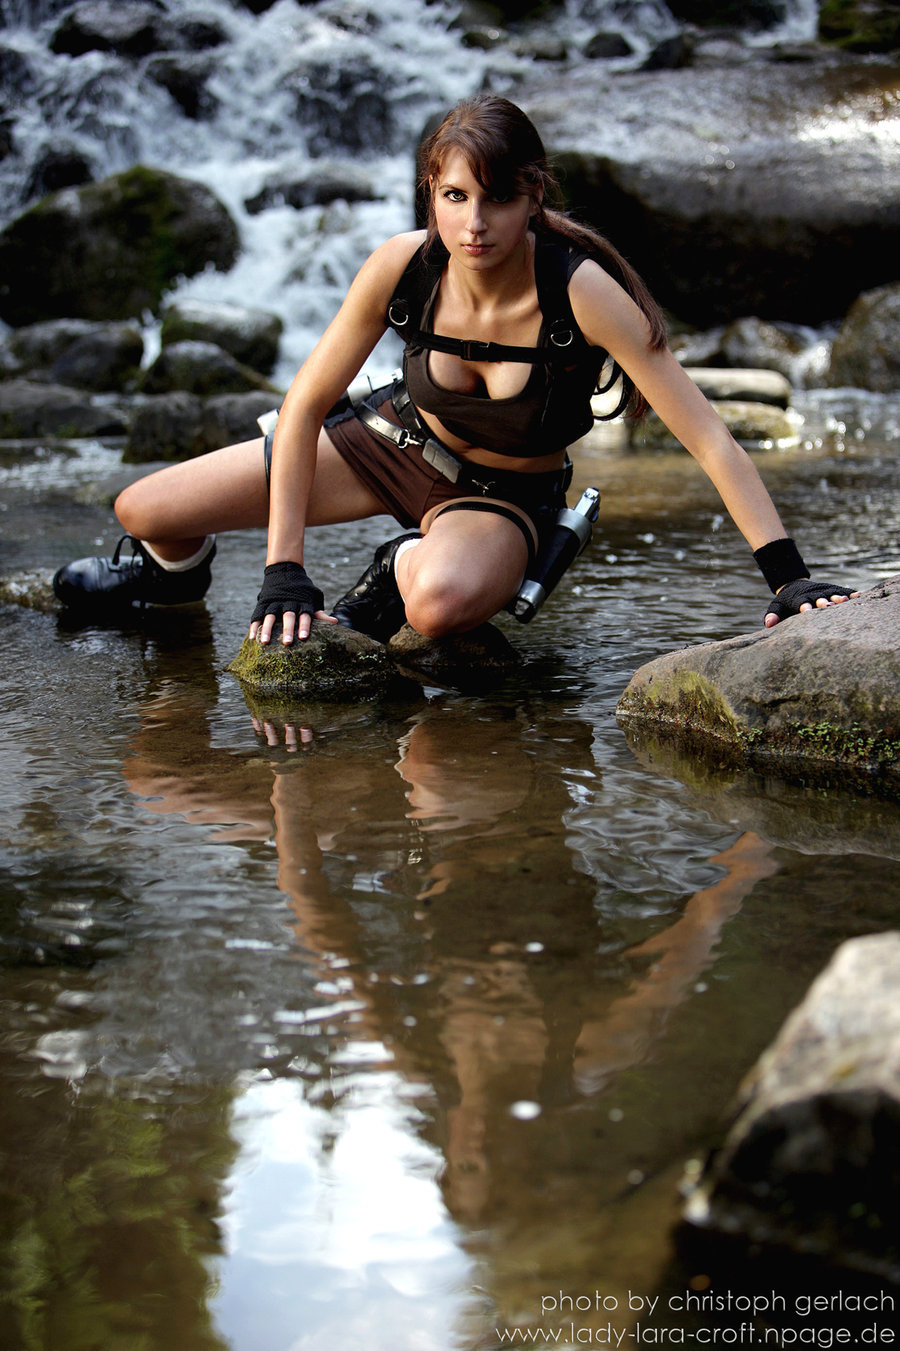 15 Most Sexy Pictures of Lara Croft   GAMERS DECIDE